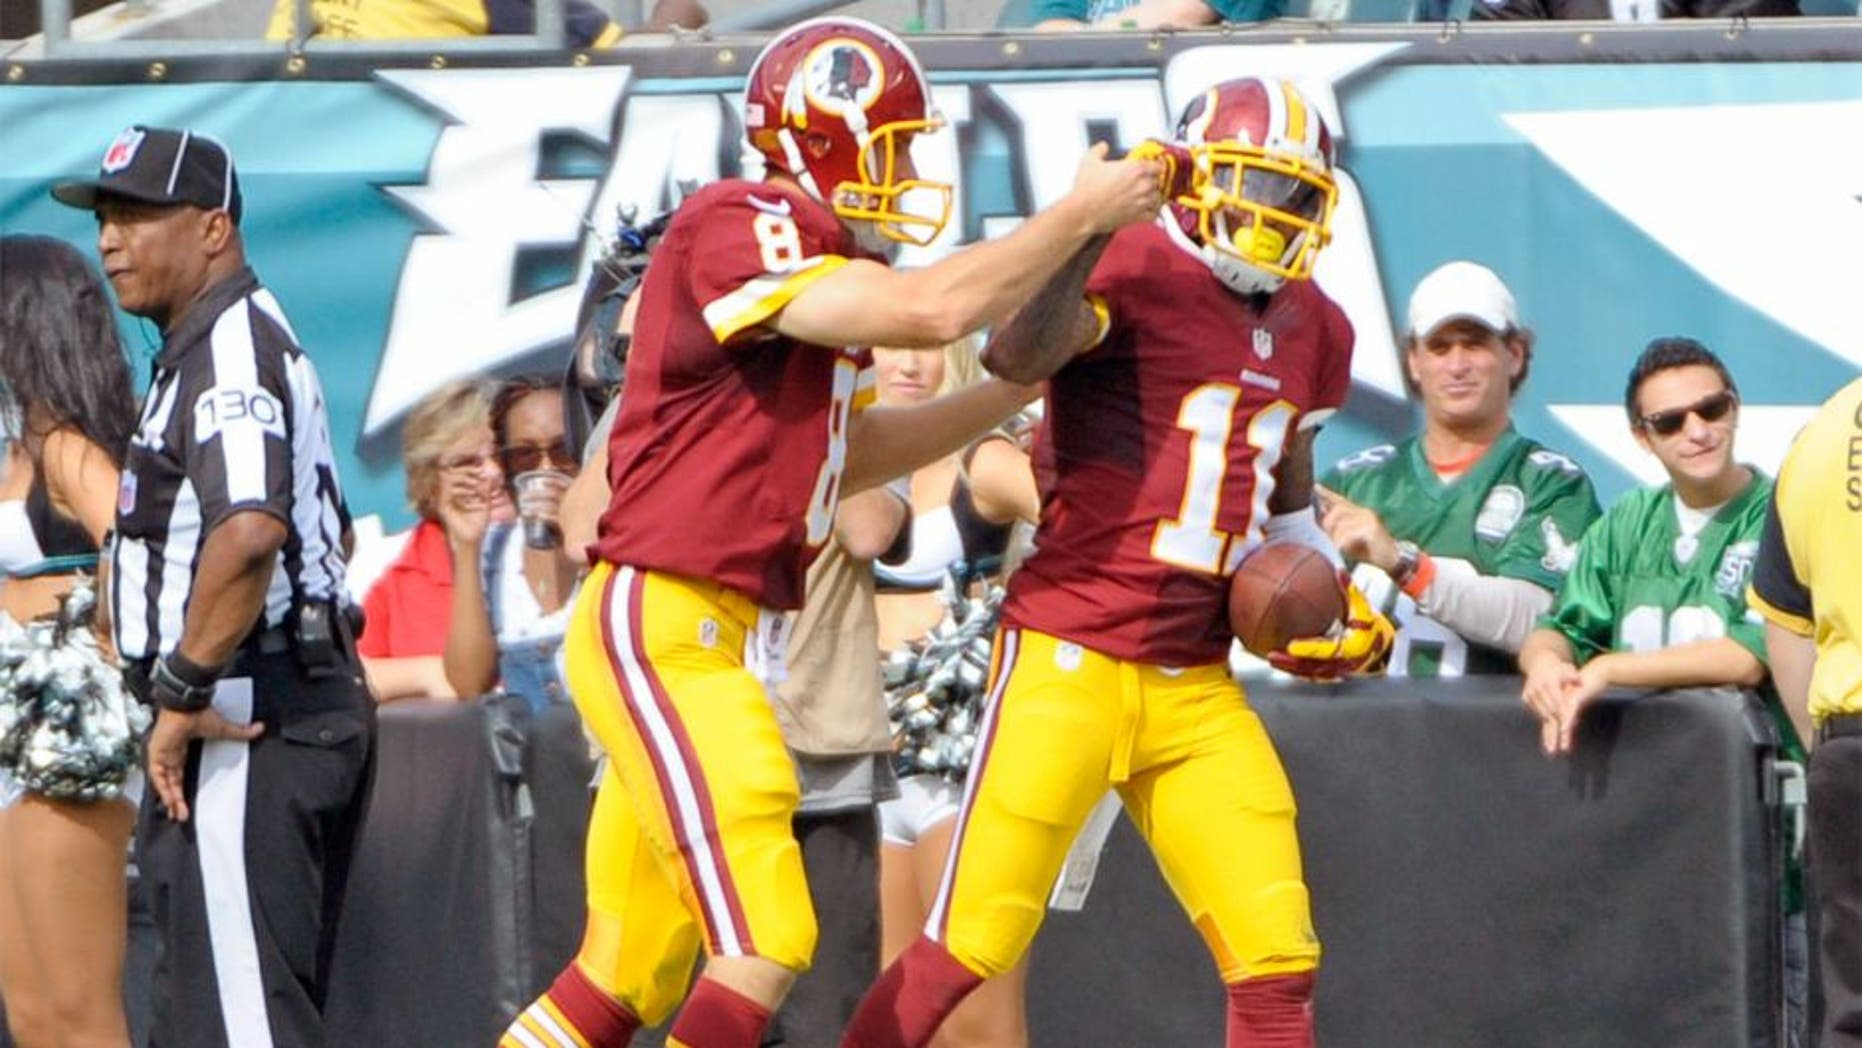 Sep 21, 2014; Philadelphia, PA, USA; Washington Redskins quarterback Kirk Cousins (8) and wide receiver DeSean Jackson (11) celebrate 81-yard touchdown catch in the third quarter against the Philadelphia Eagles at Lincoln Financial Field. The Eagles defeated the Redskins, 37-34. Mandatory Credit: Eric Hartline-USA TODAY Sports